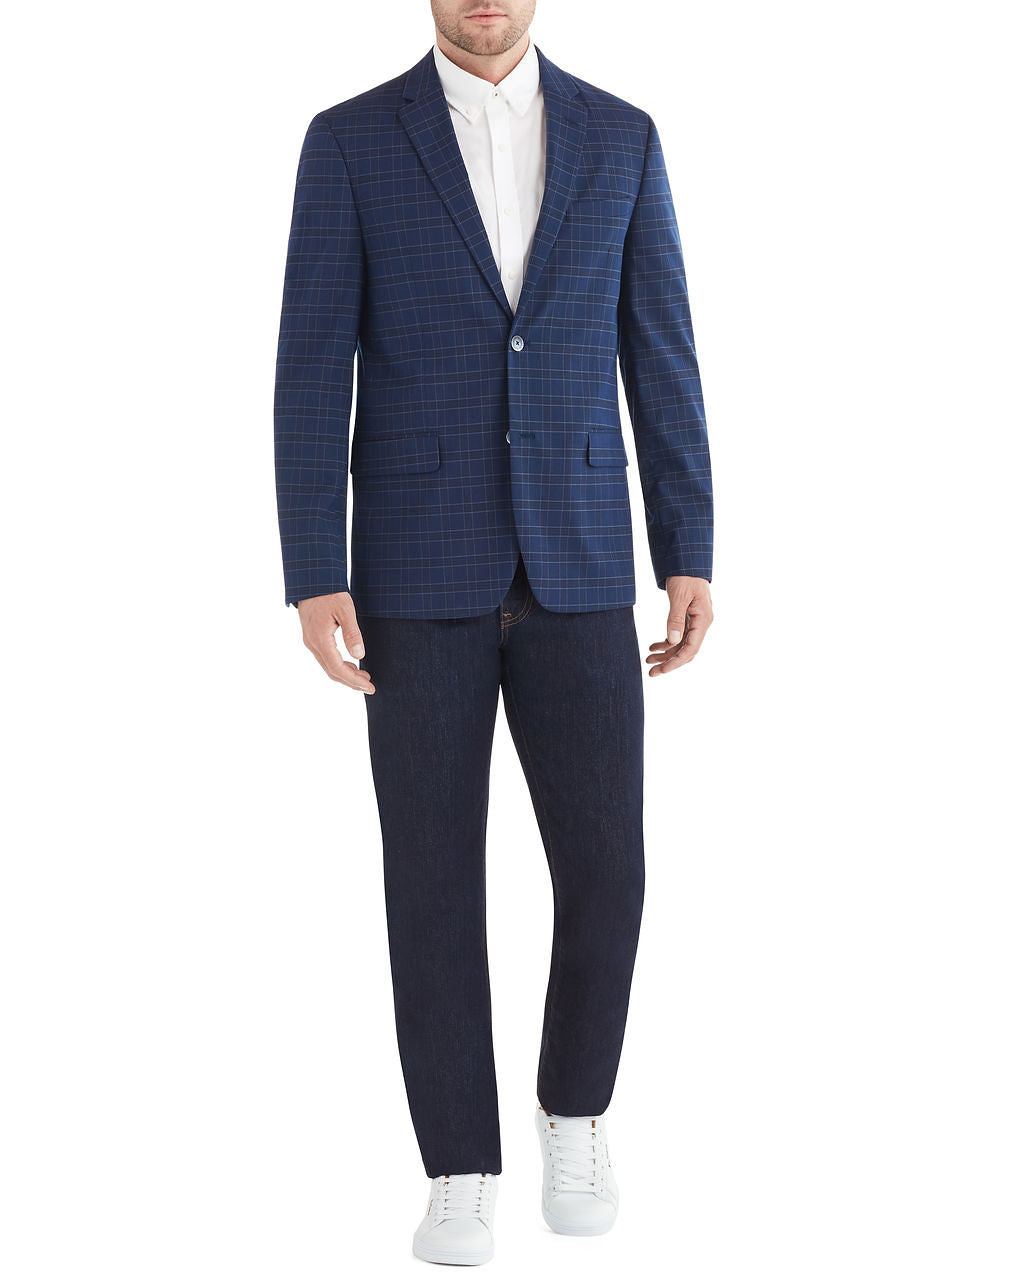 Crown Plaid Check Sportcoat Jacket - Navy